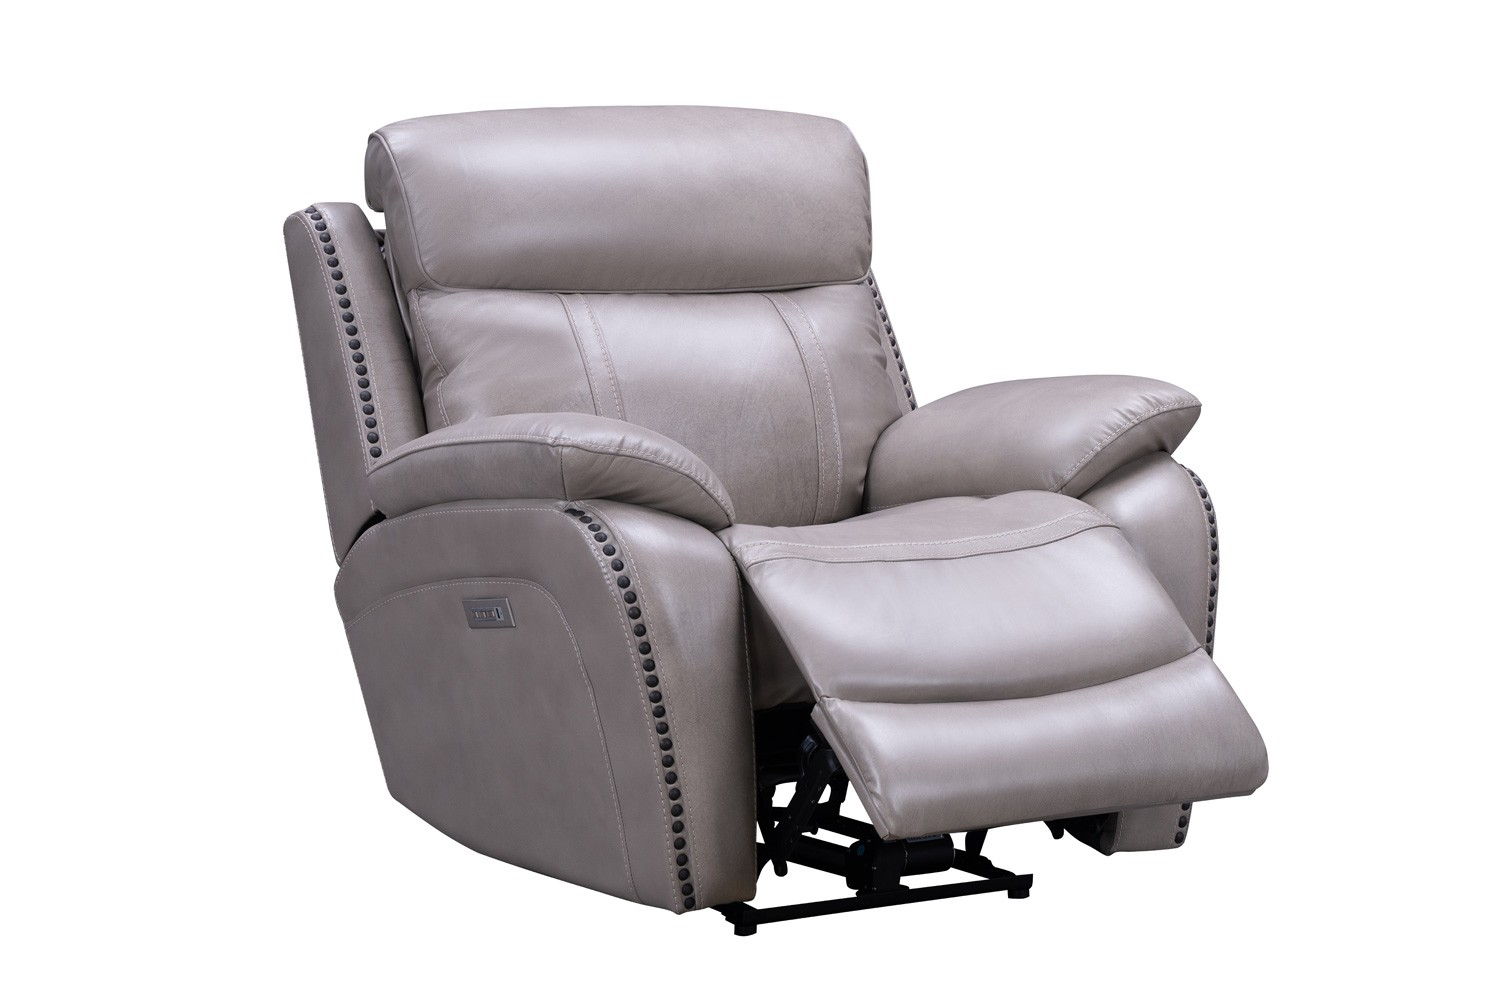 Barcalounger Sandover Power Recliner Chair with Power Head Rest and Lumbar - Sergi Gray Beige/Leather Match